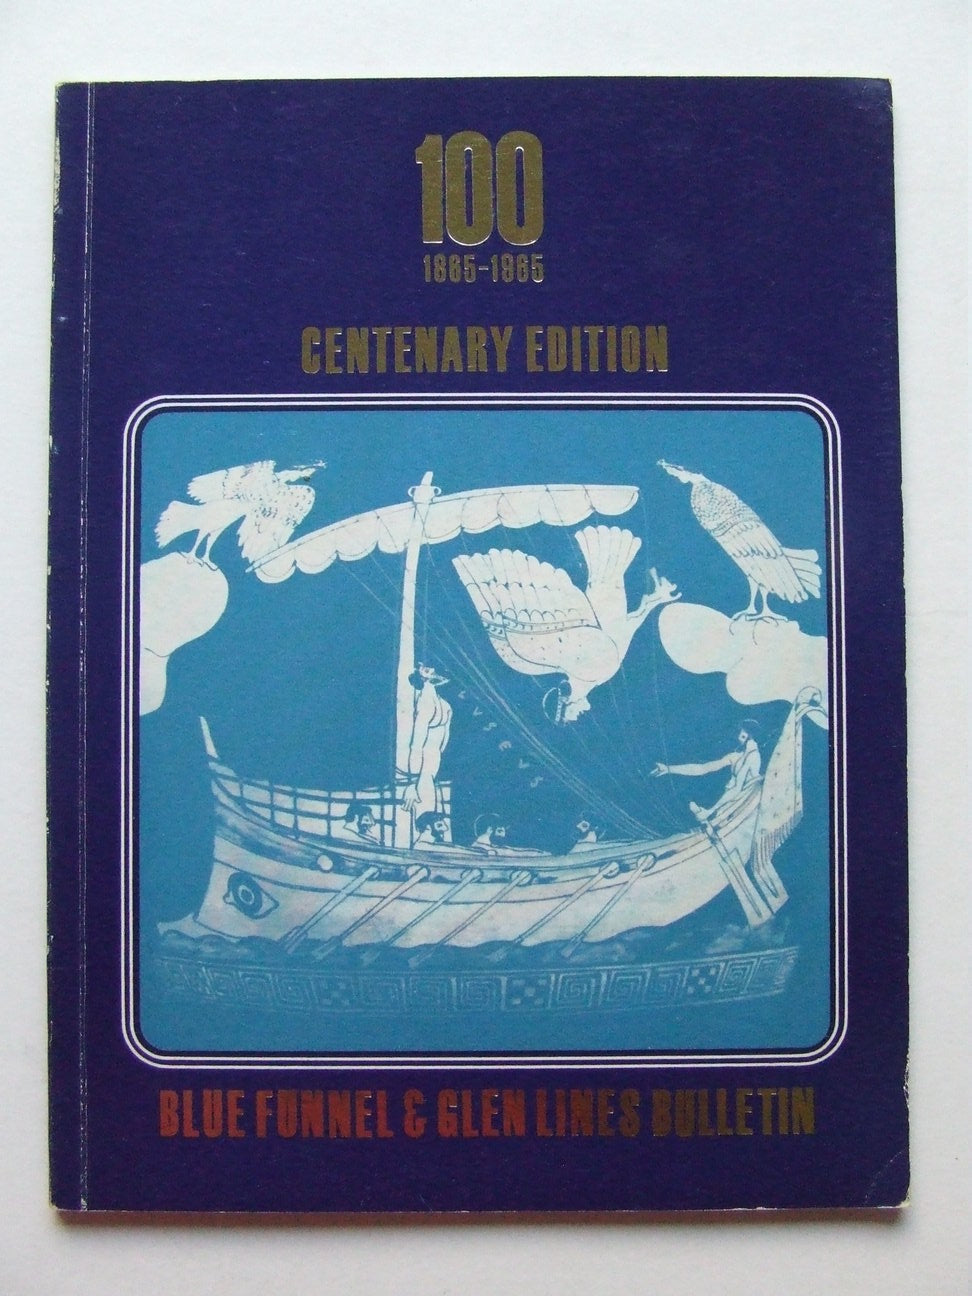 Blue Funnel & Glen Lines Bulletin - Centenary Edition 1865-1965